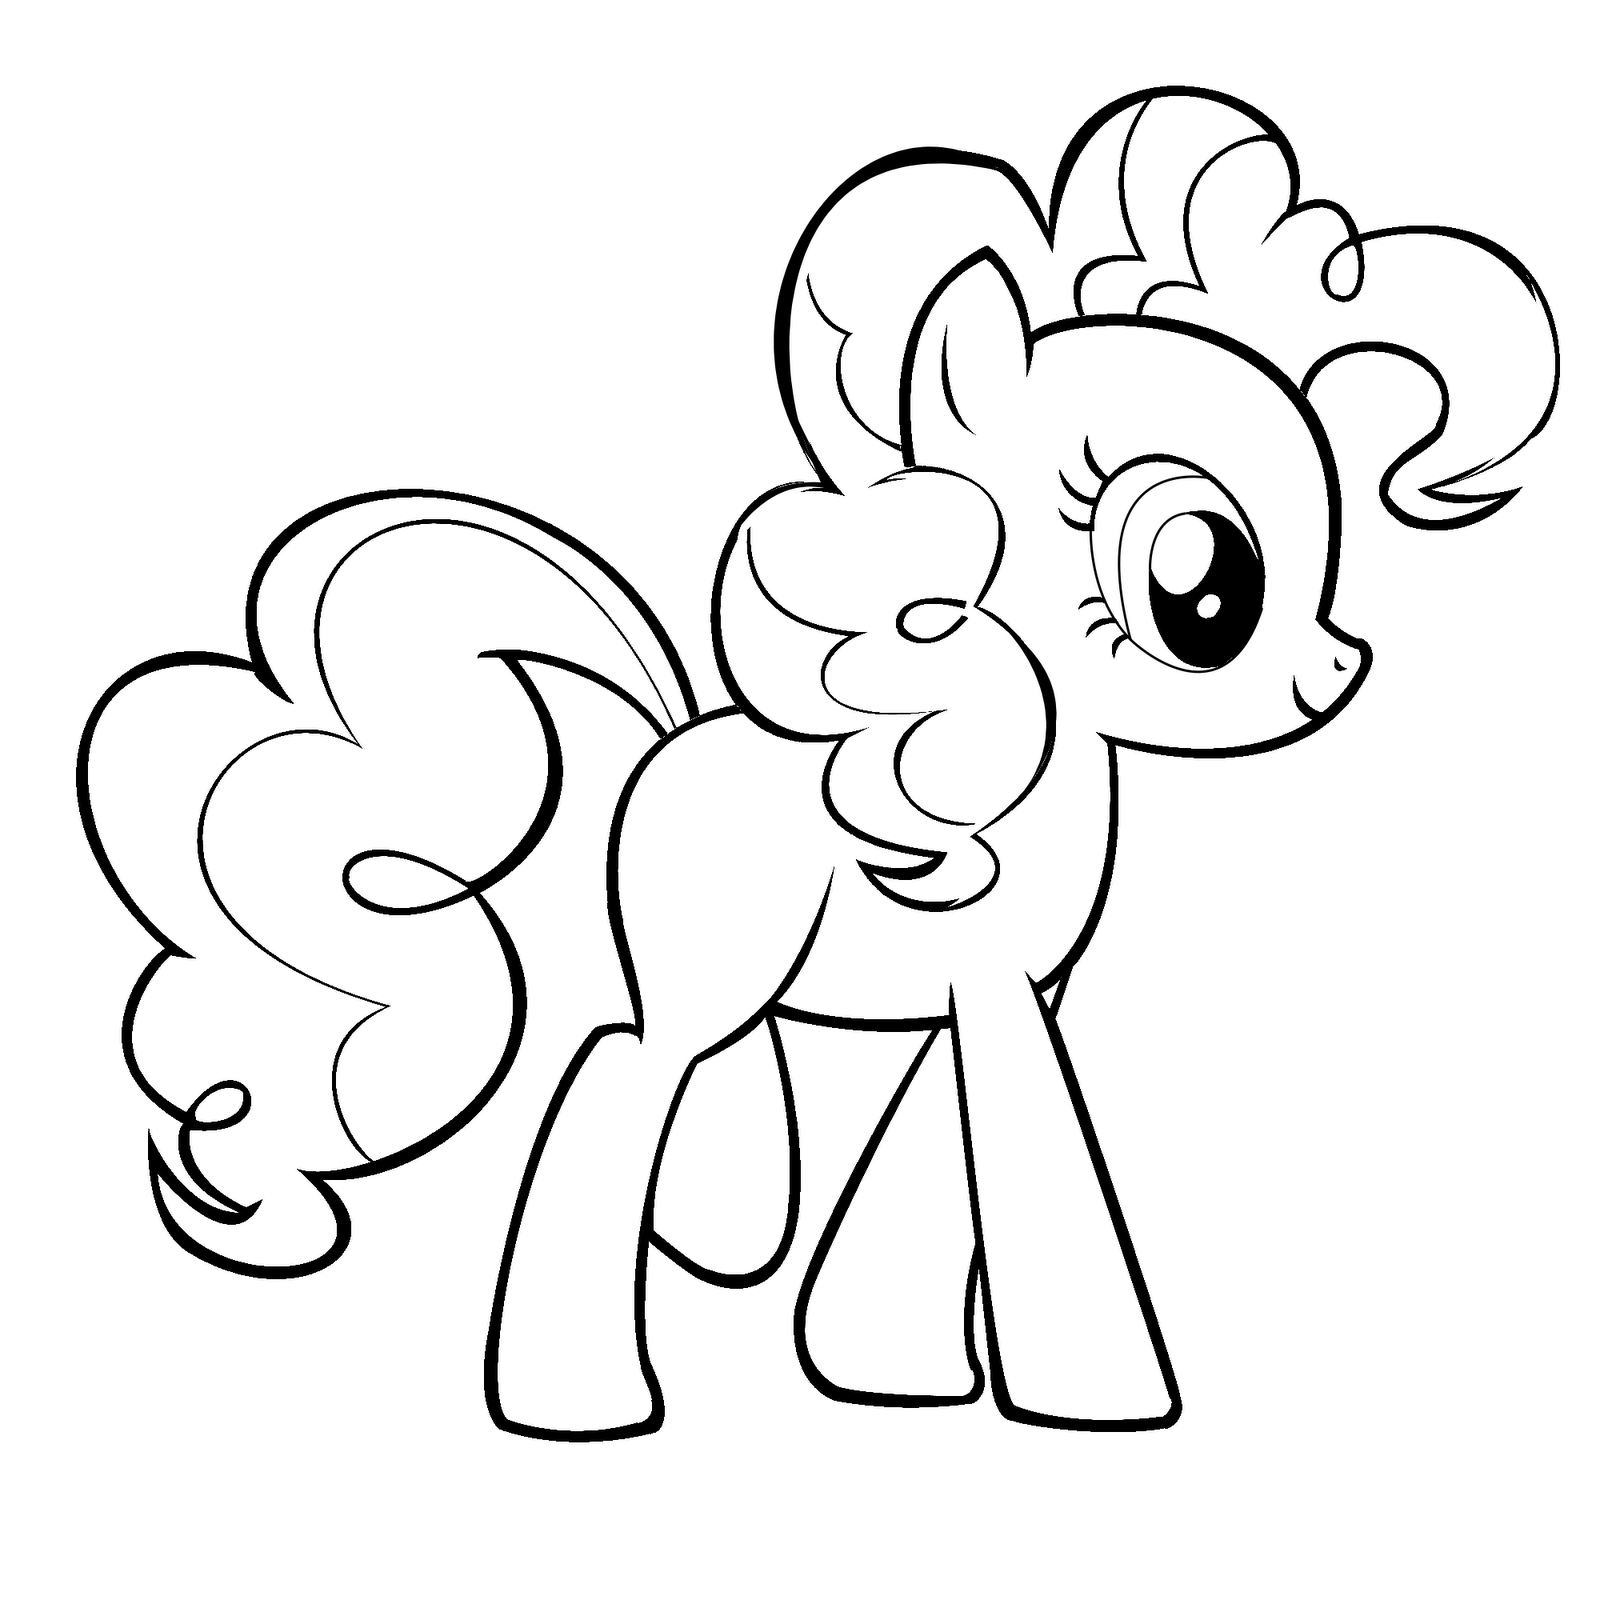 my little pony printouts pinkie pie coloring pages best coloring pages for kids little my pony printouts